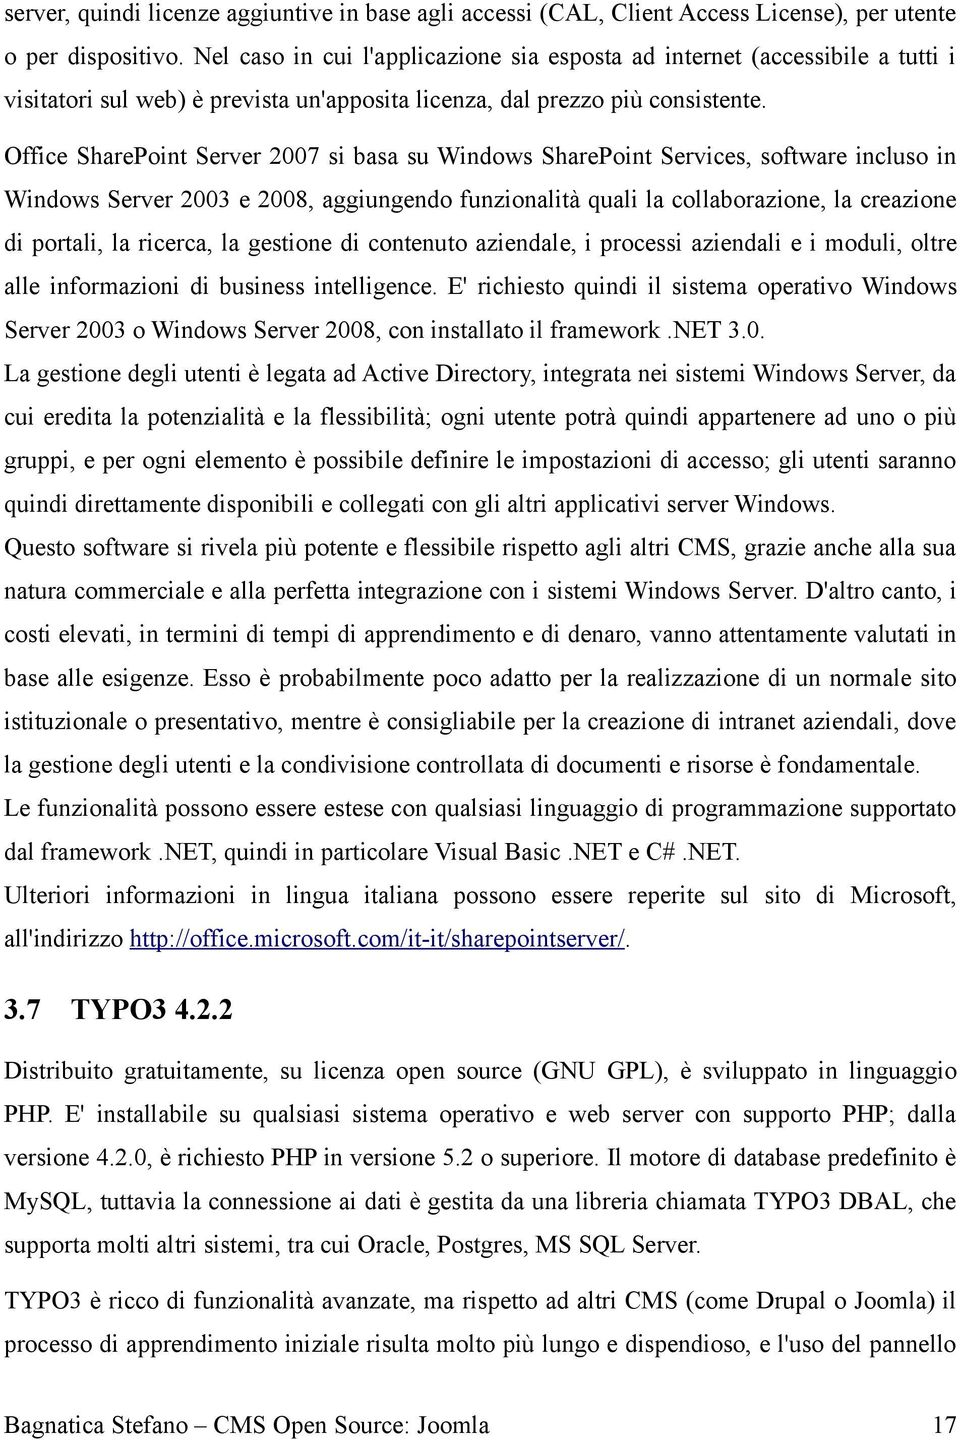 Office SharePoint Server 2007 si basa su Windows SharePoint Services, software incluso in Windows Server 2003 e 2008, aggiungendo funzionalità quali la collaborazione, la creazione di portali, la